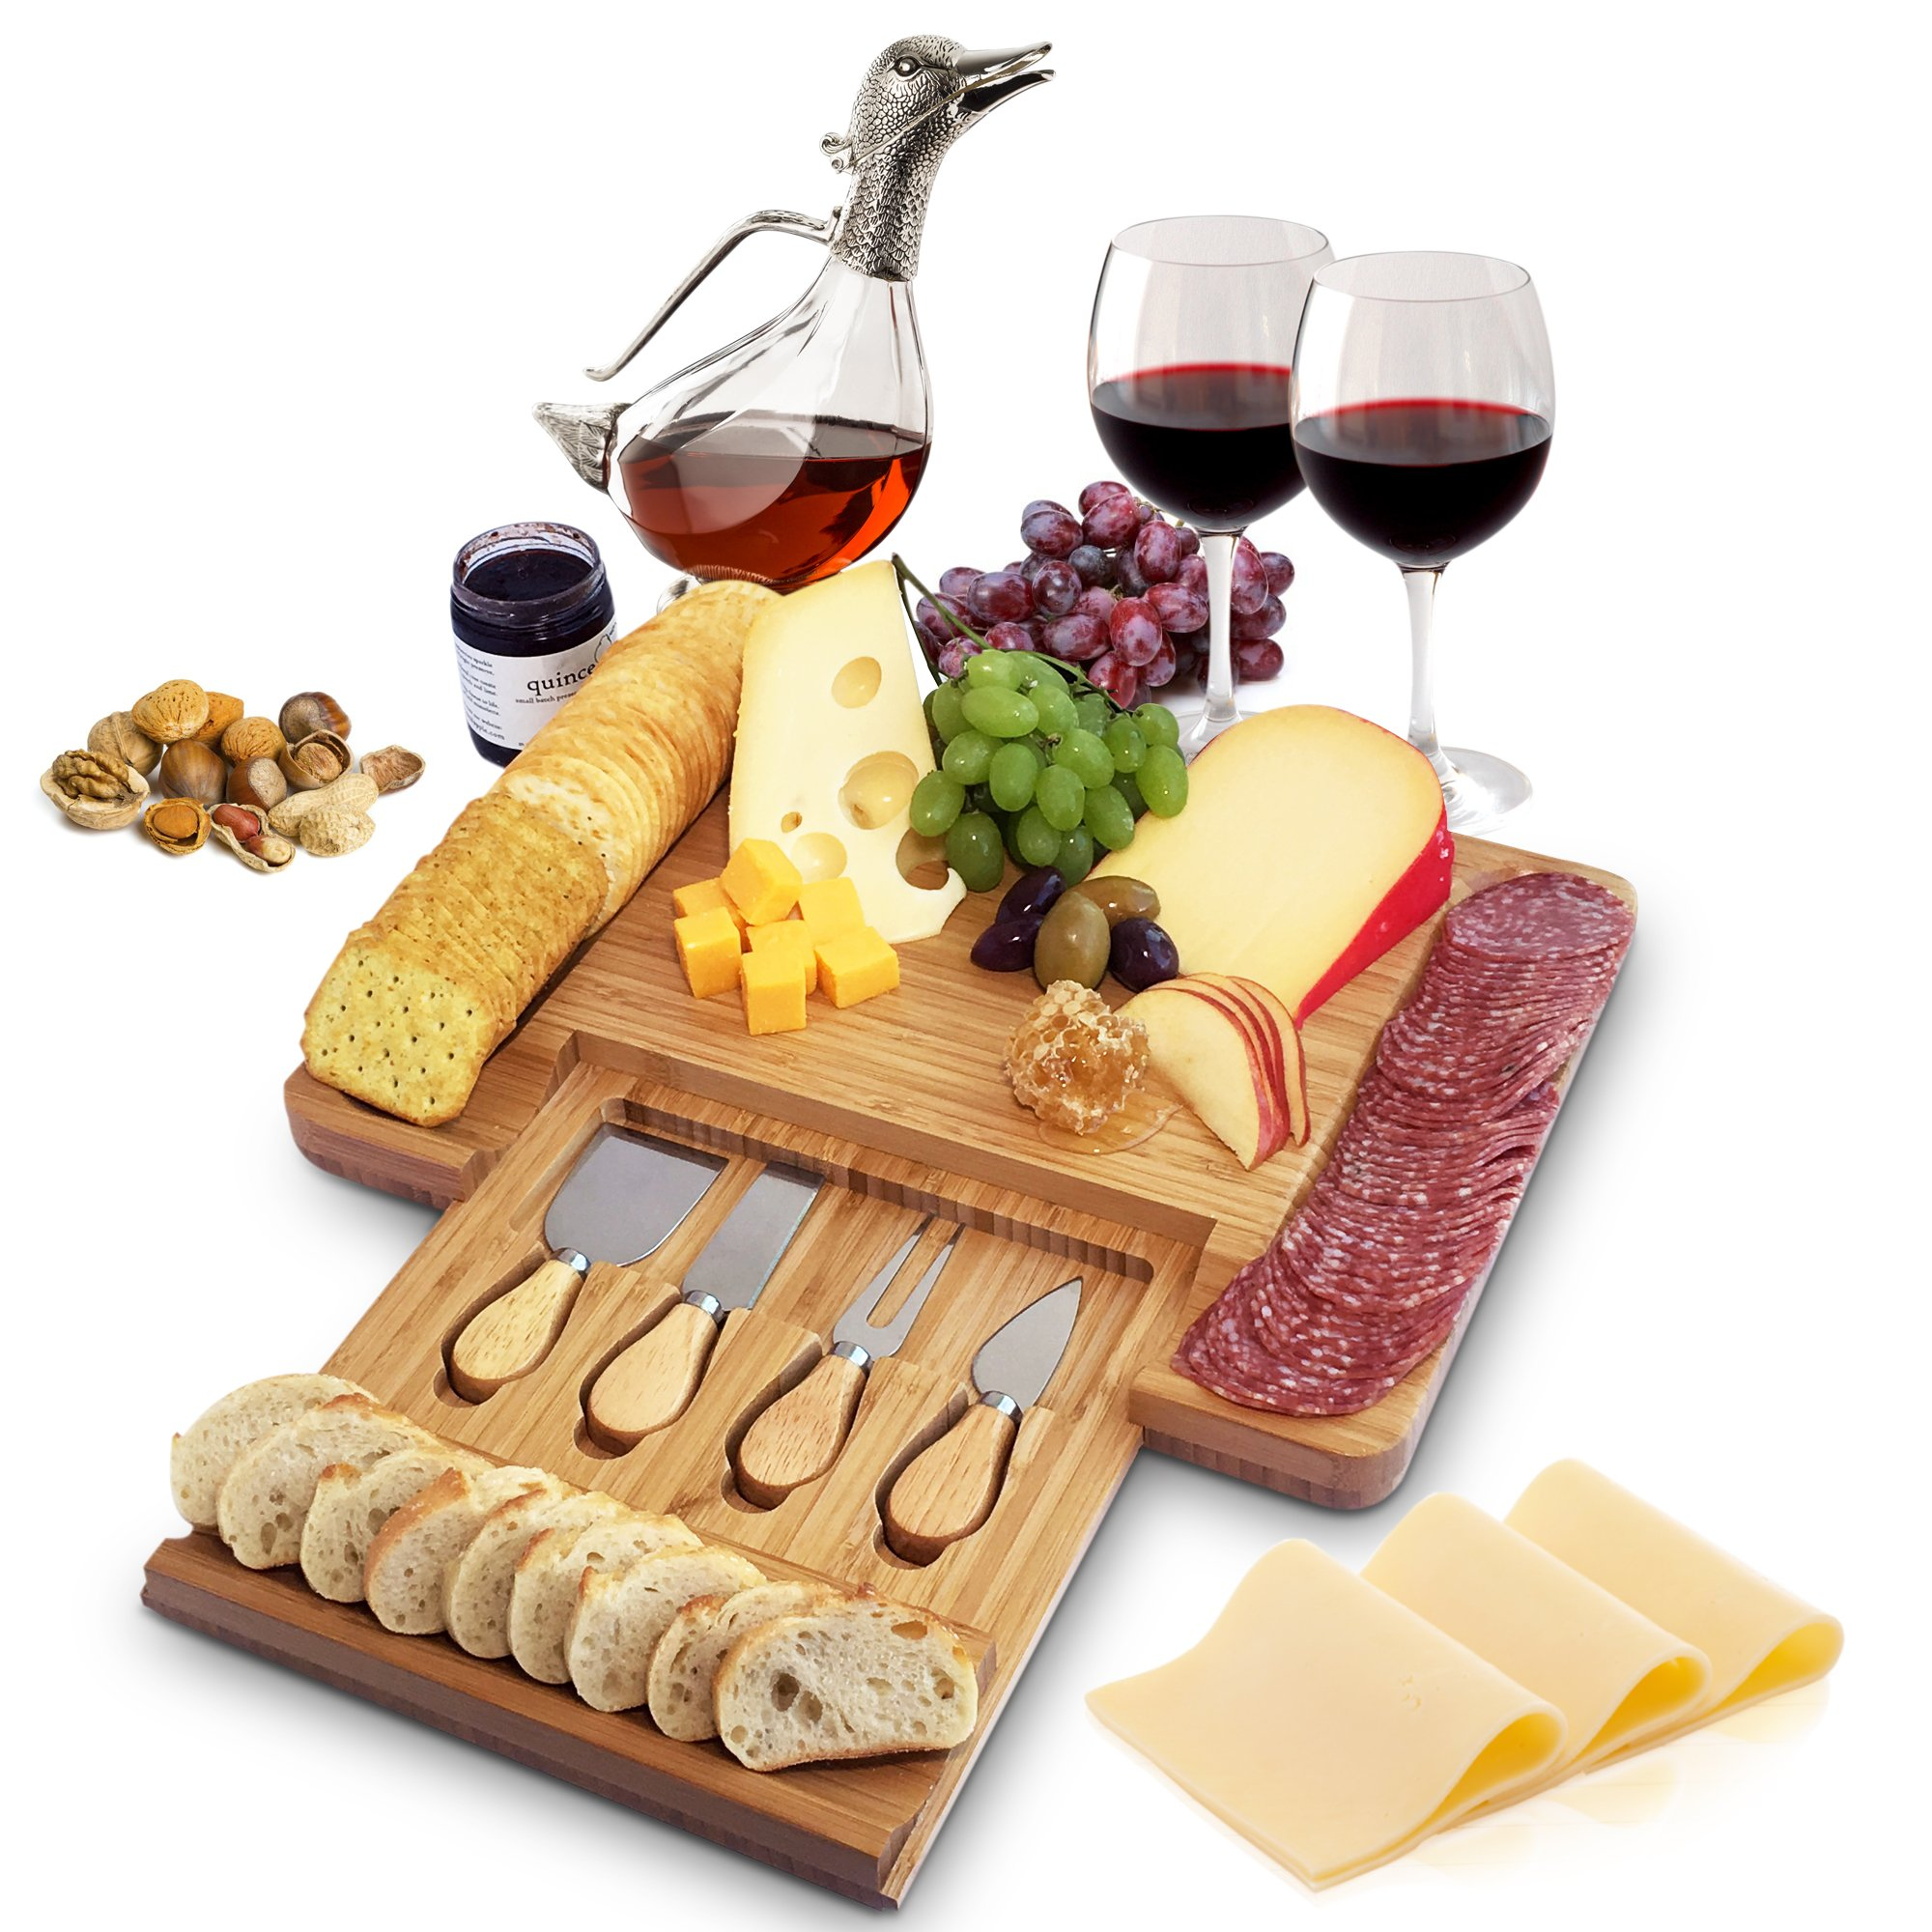 Home Euphoria Natural Bamboo Cheese Board and Cutlery Set with Slide-out Drawer. Serving Tray for Wine, Crackers, Charcuterie. Perfect for Christmas, Wedding & Housewarming Gifts. by Home Euphoria